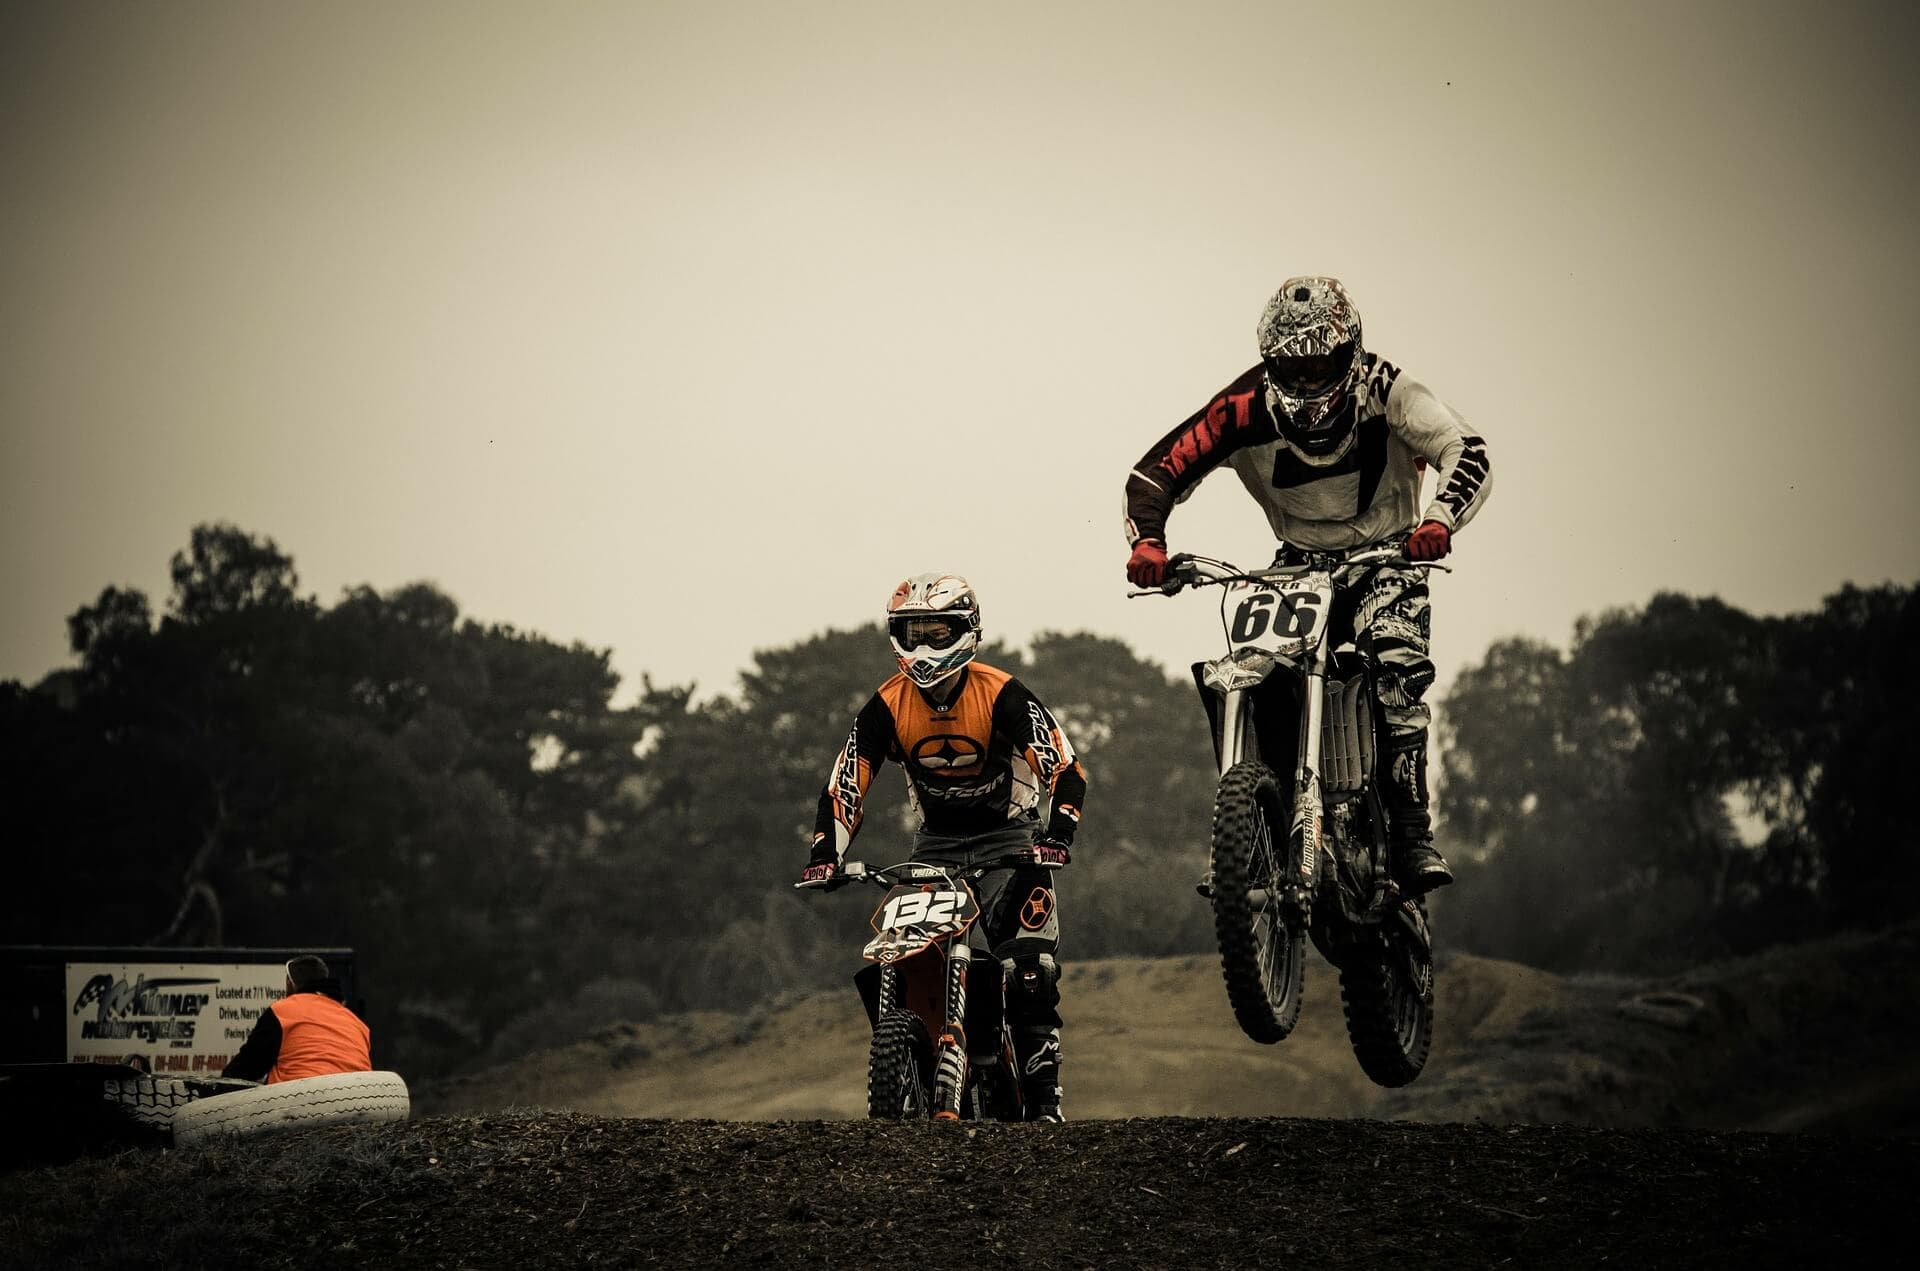 Dirt bike riding on the track